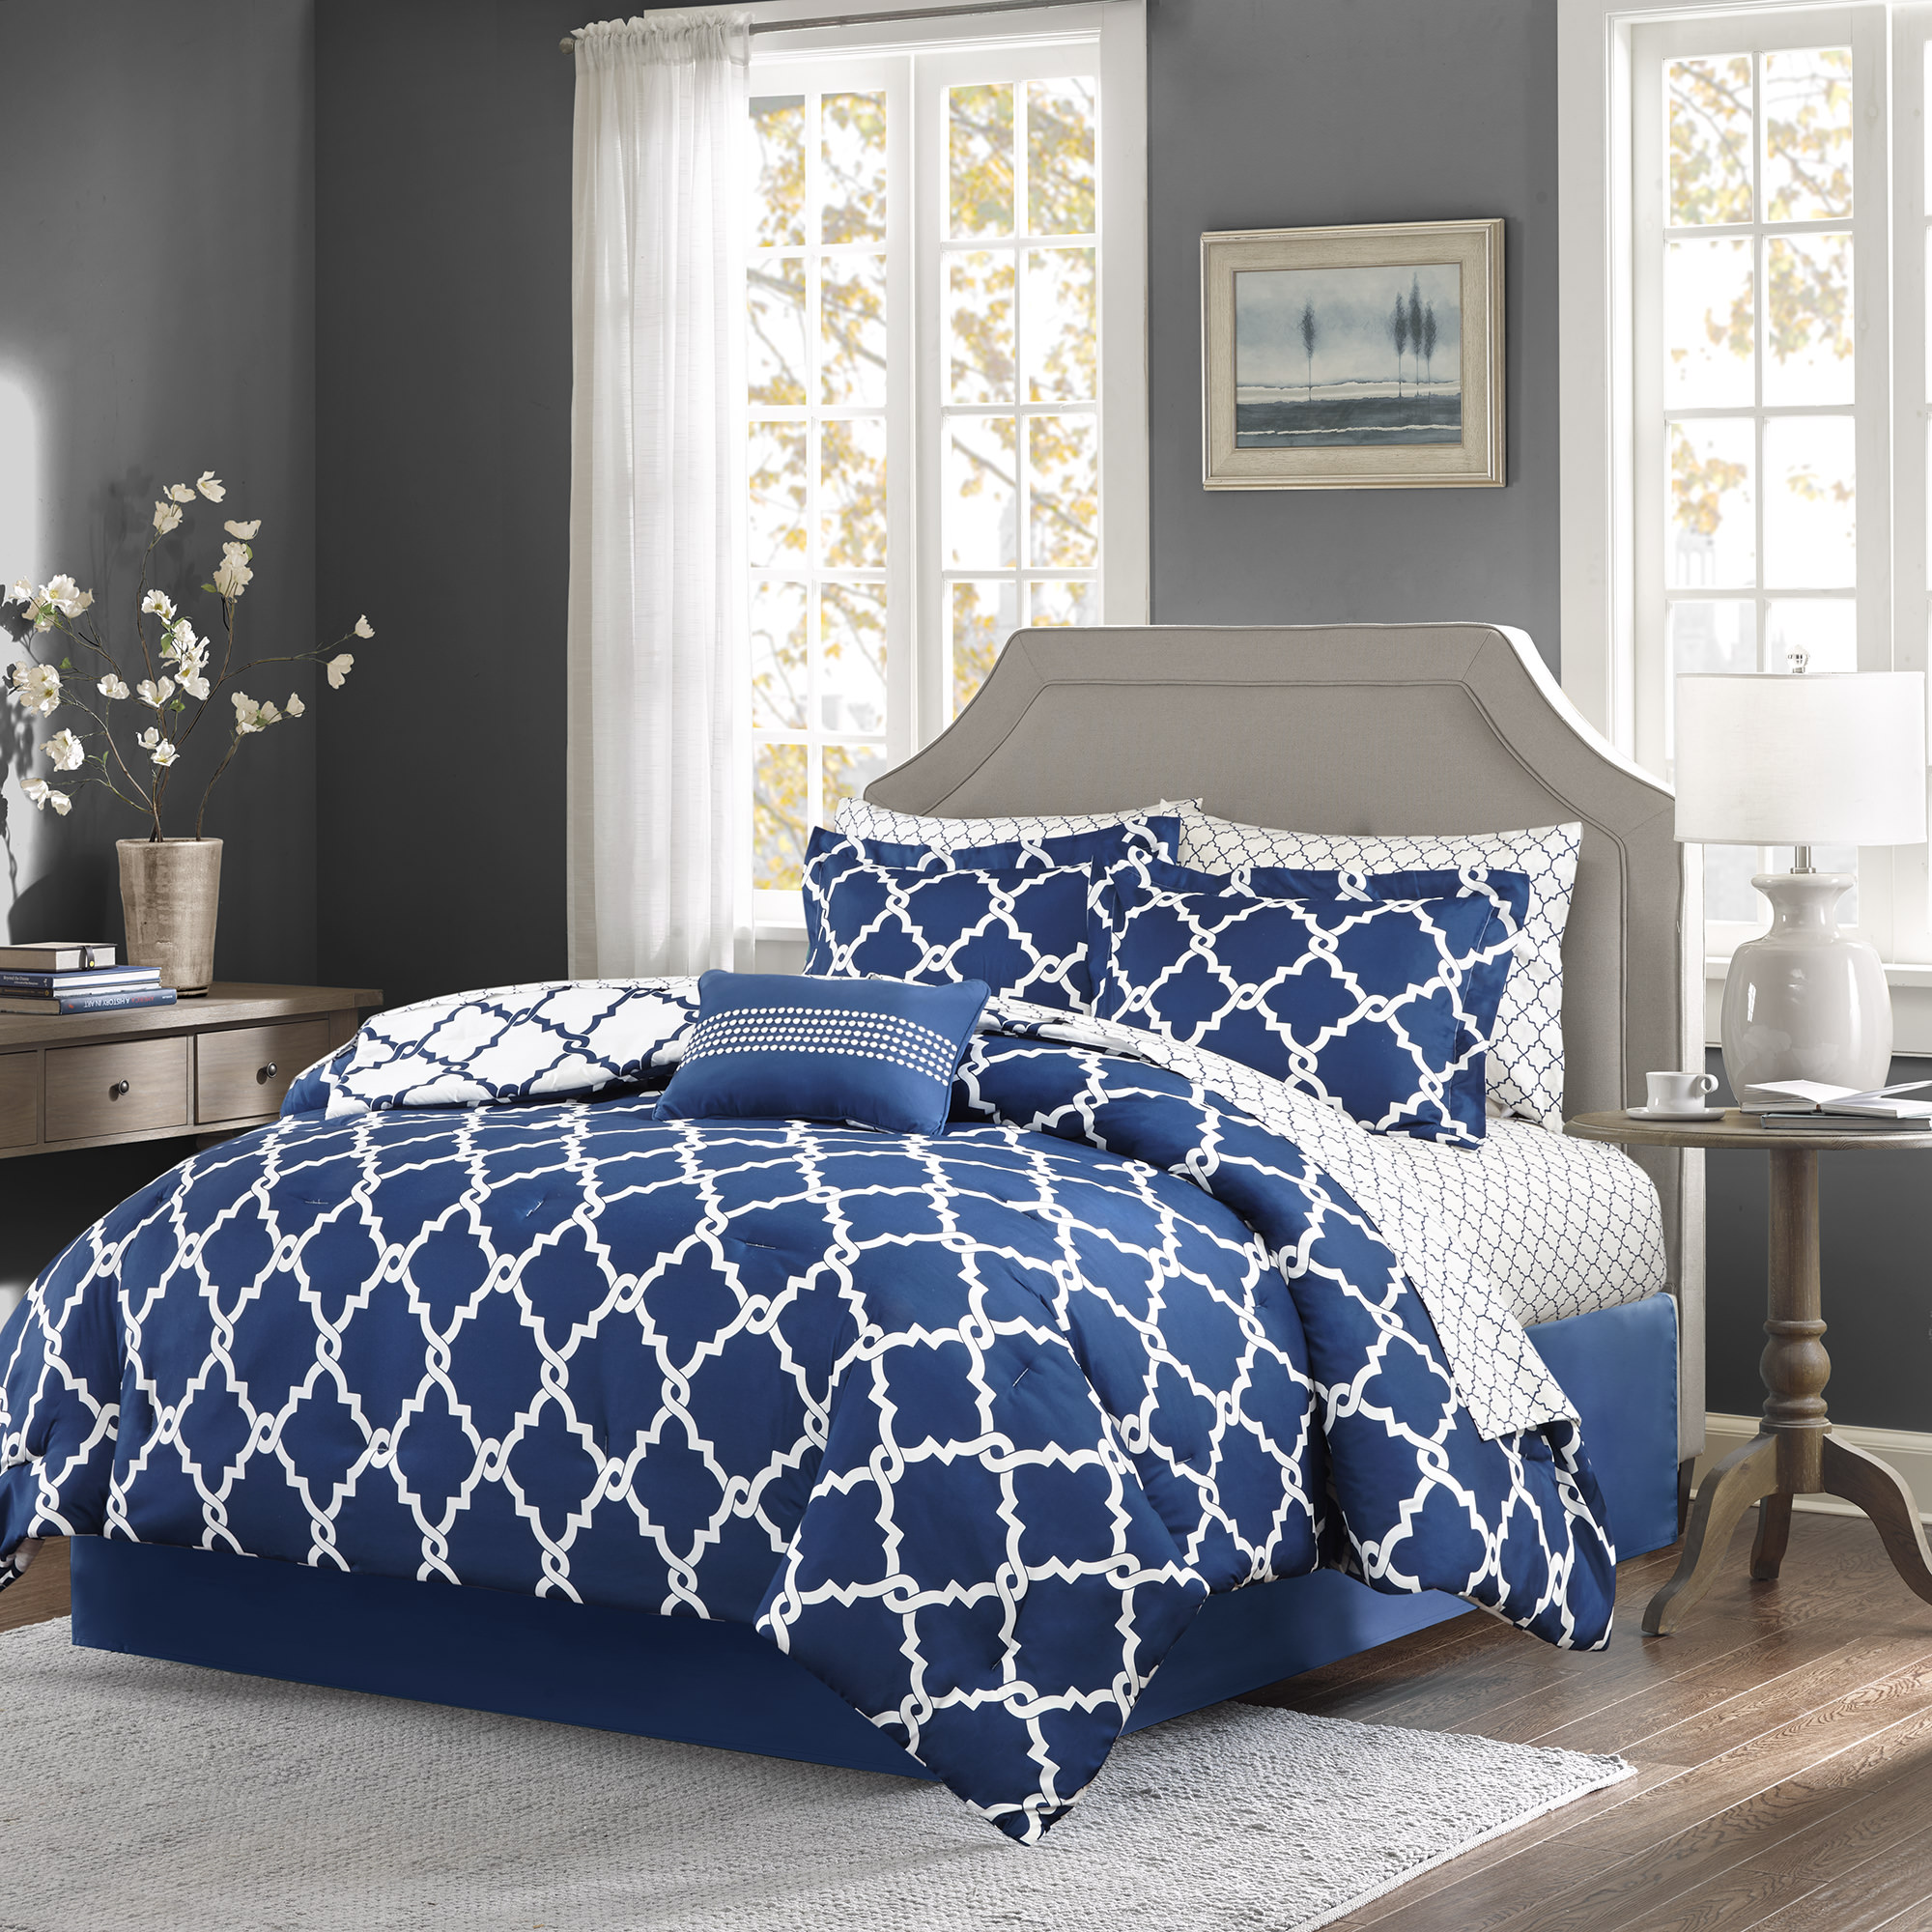 Home Essence Becker Reversible Bed in a Bag Bedding Set